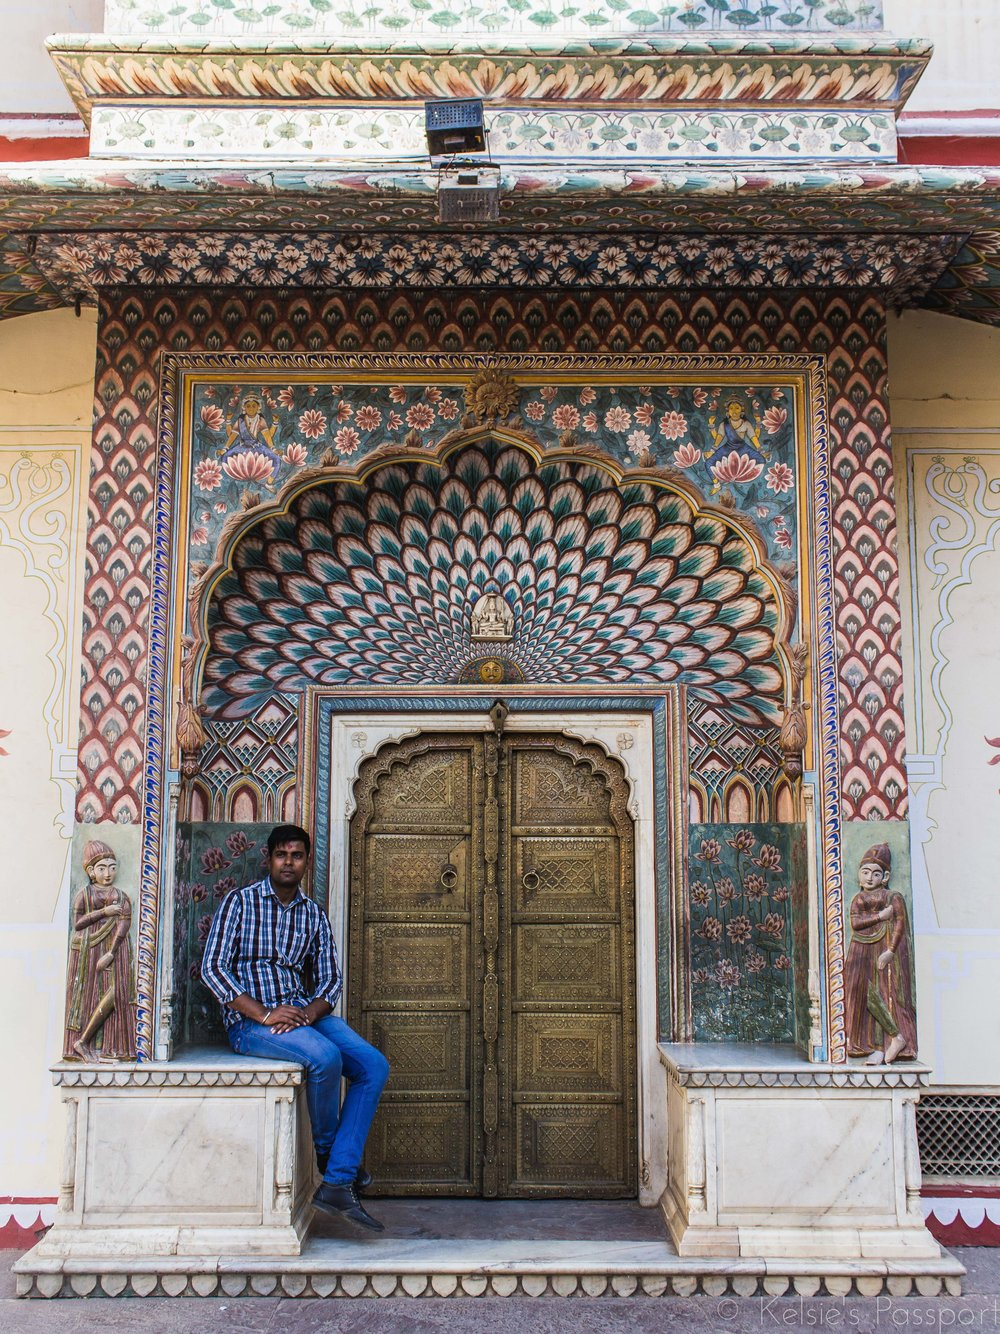 It's not just Instagram models that pose in front of the beautiful doors of the City Palace in Jaipur.